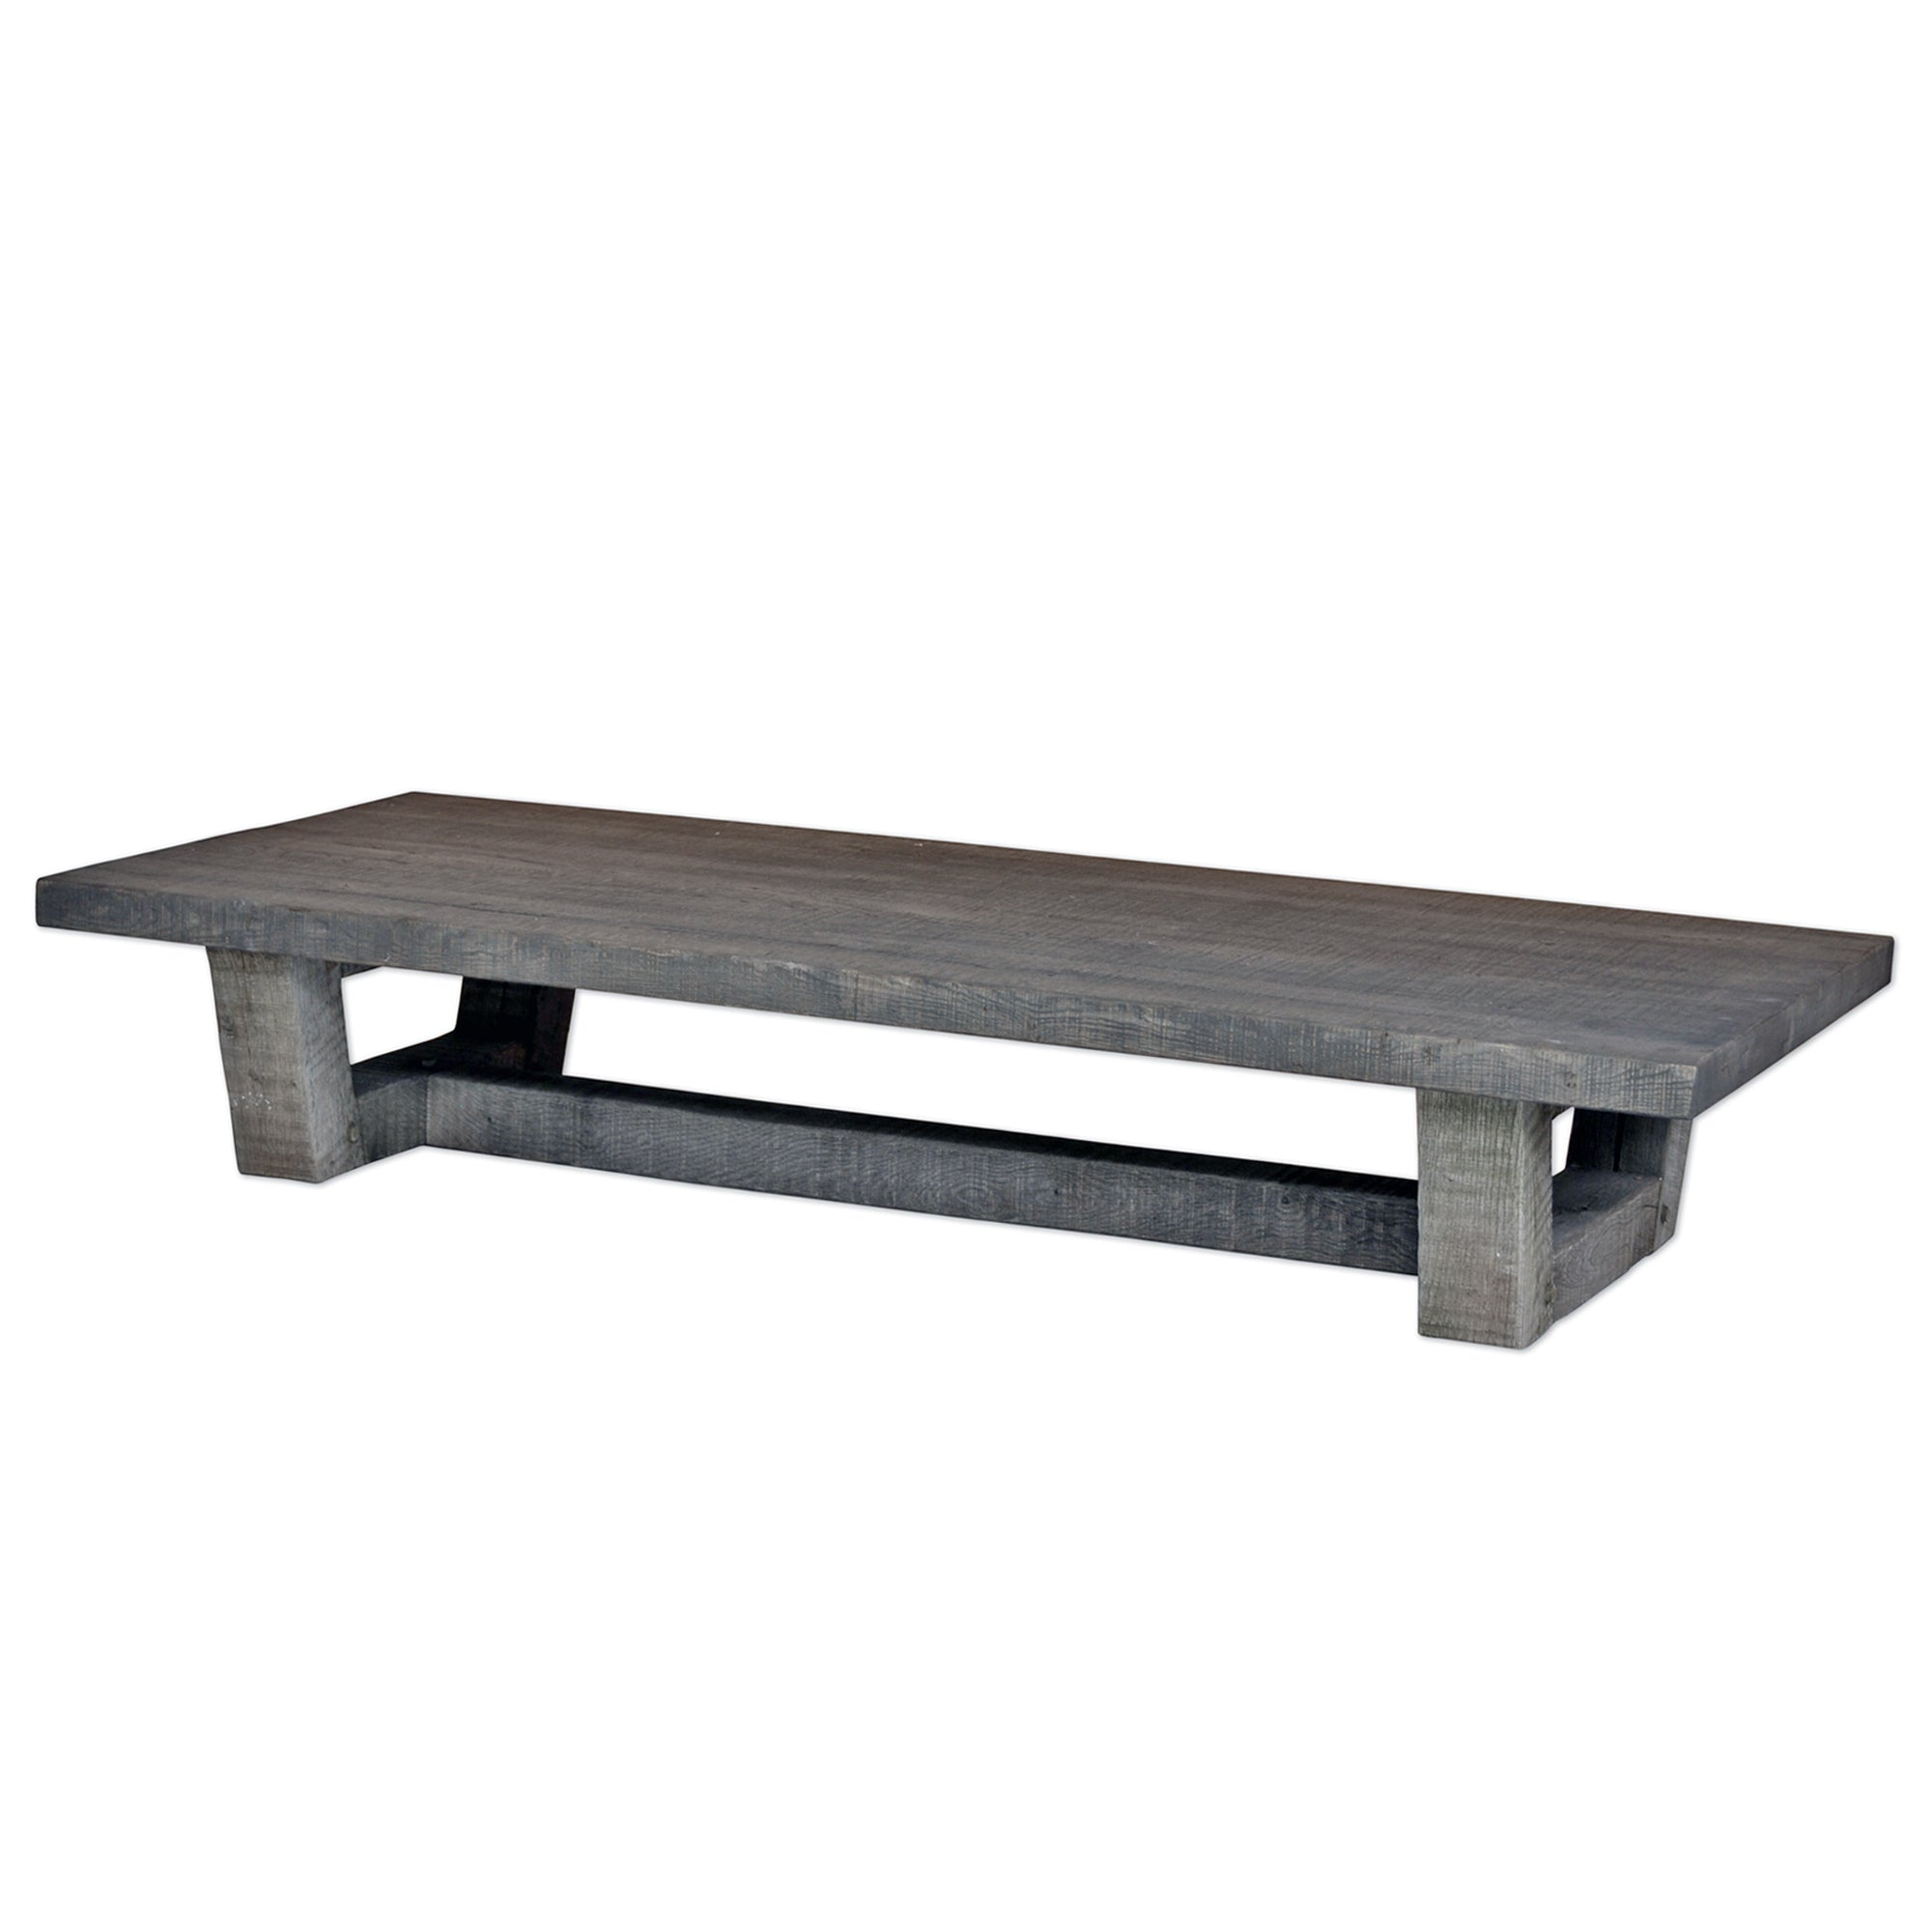 Belgian Coffee Table with U-Base